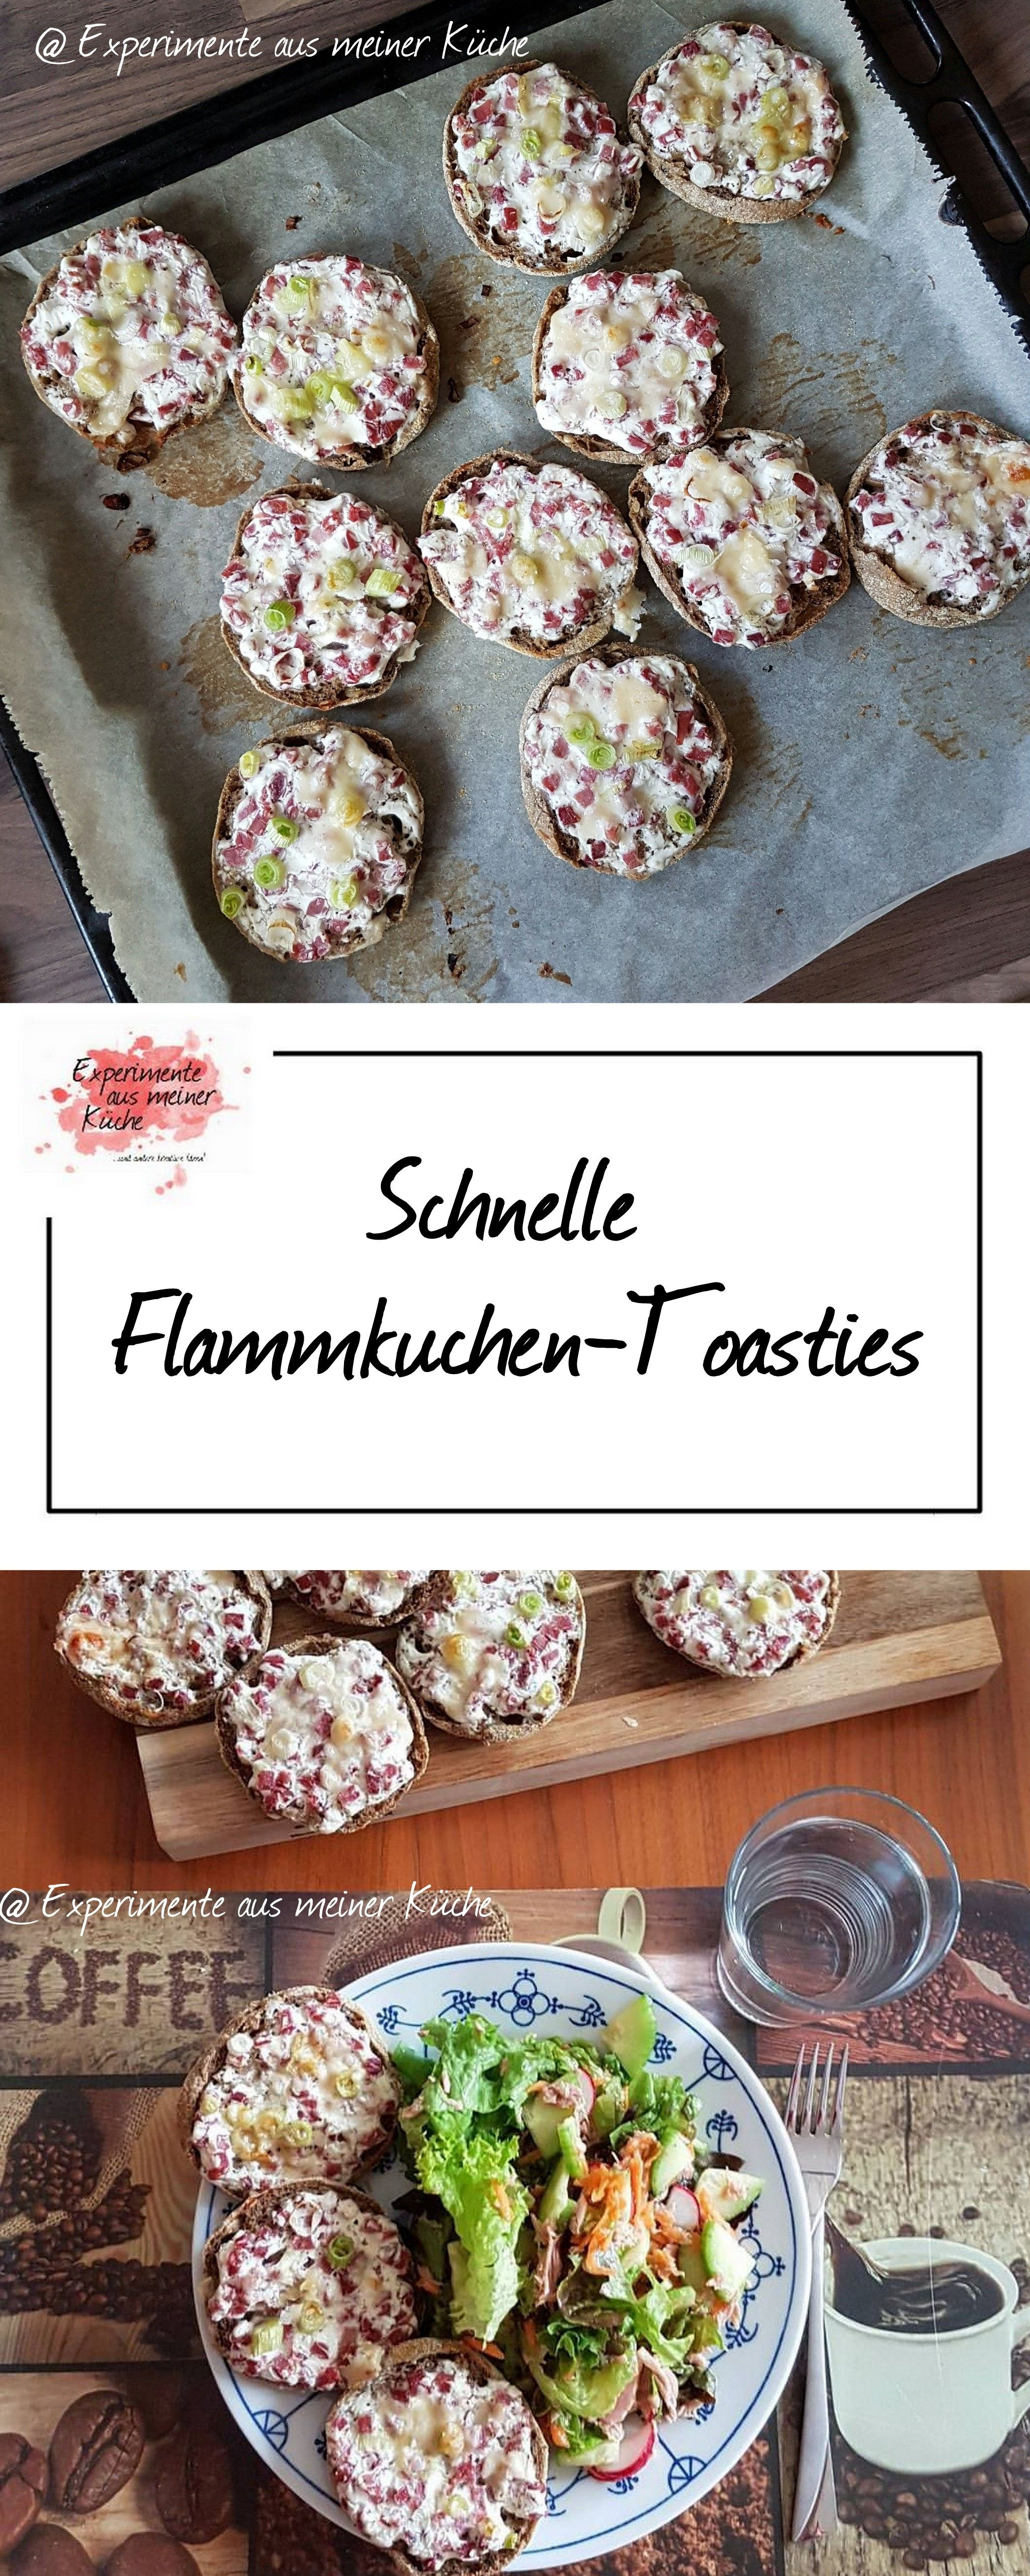 Weight Watchers Schnelle Kuchen Schnelle Toastie Pizzen Lunch Dinner Ideen Rezepte